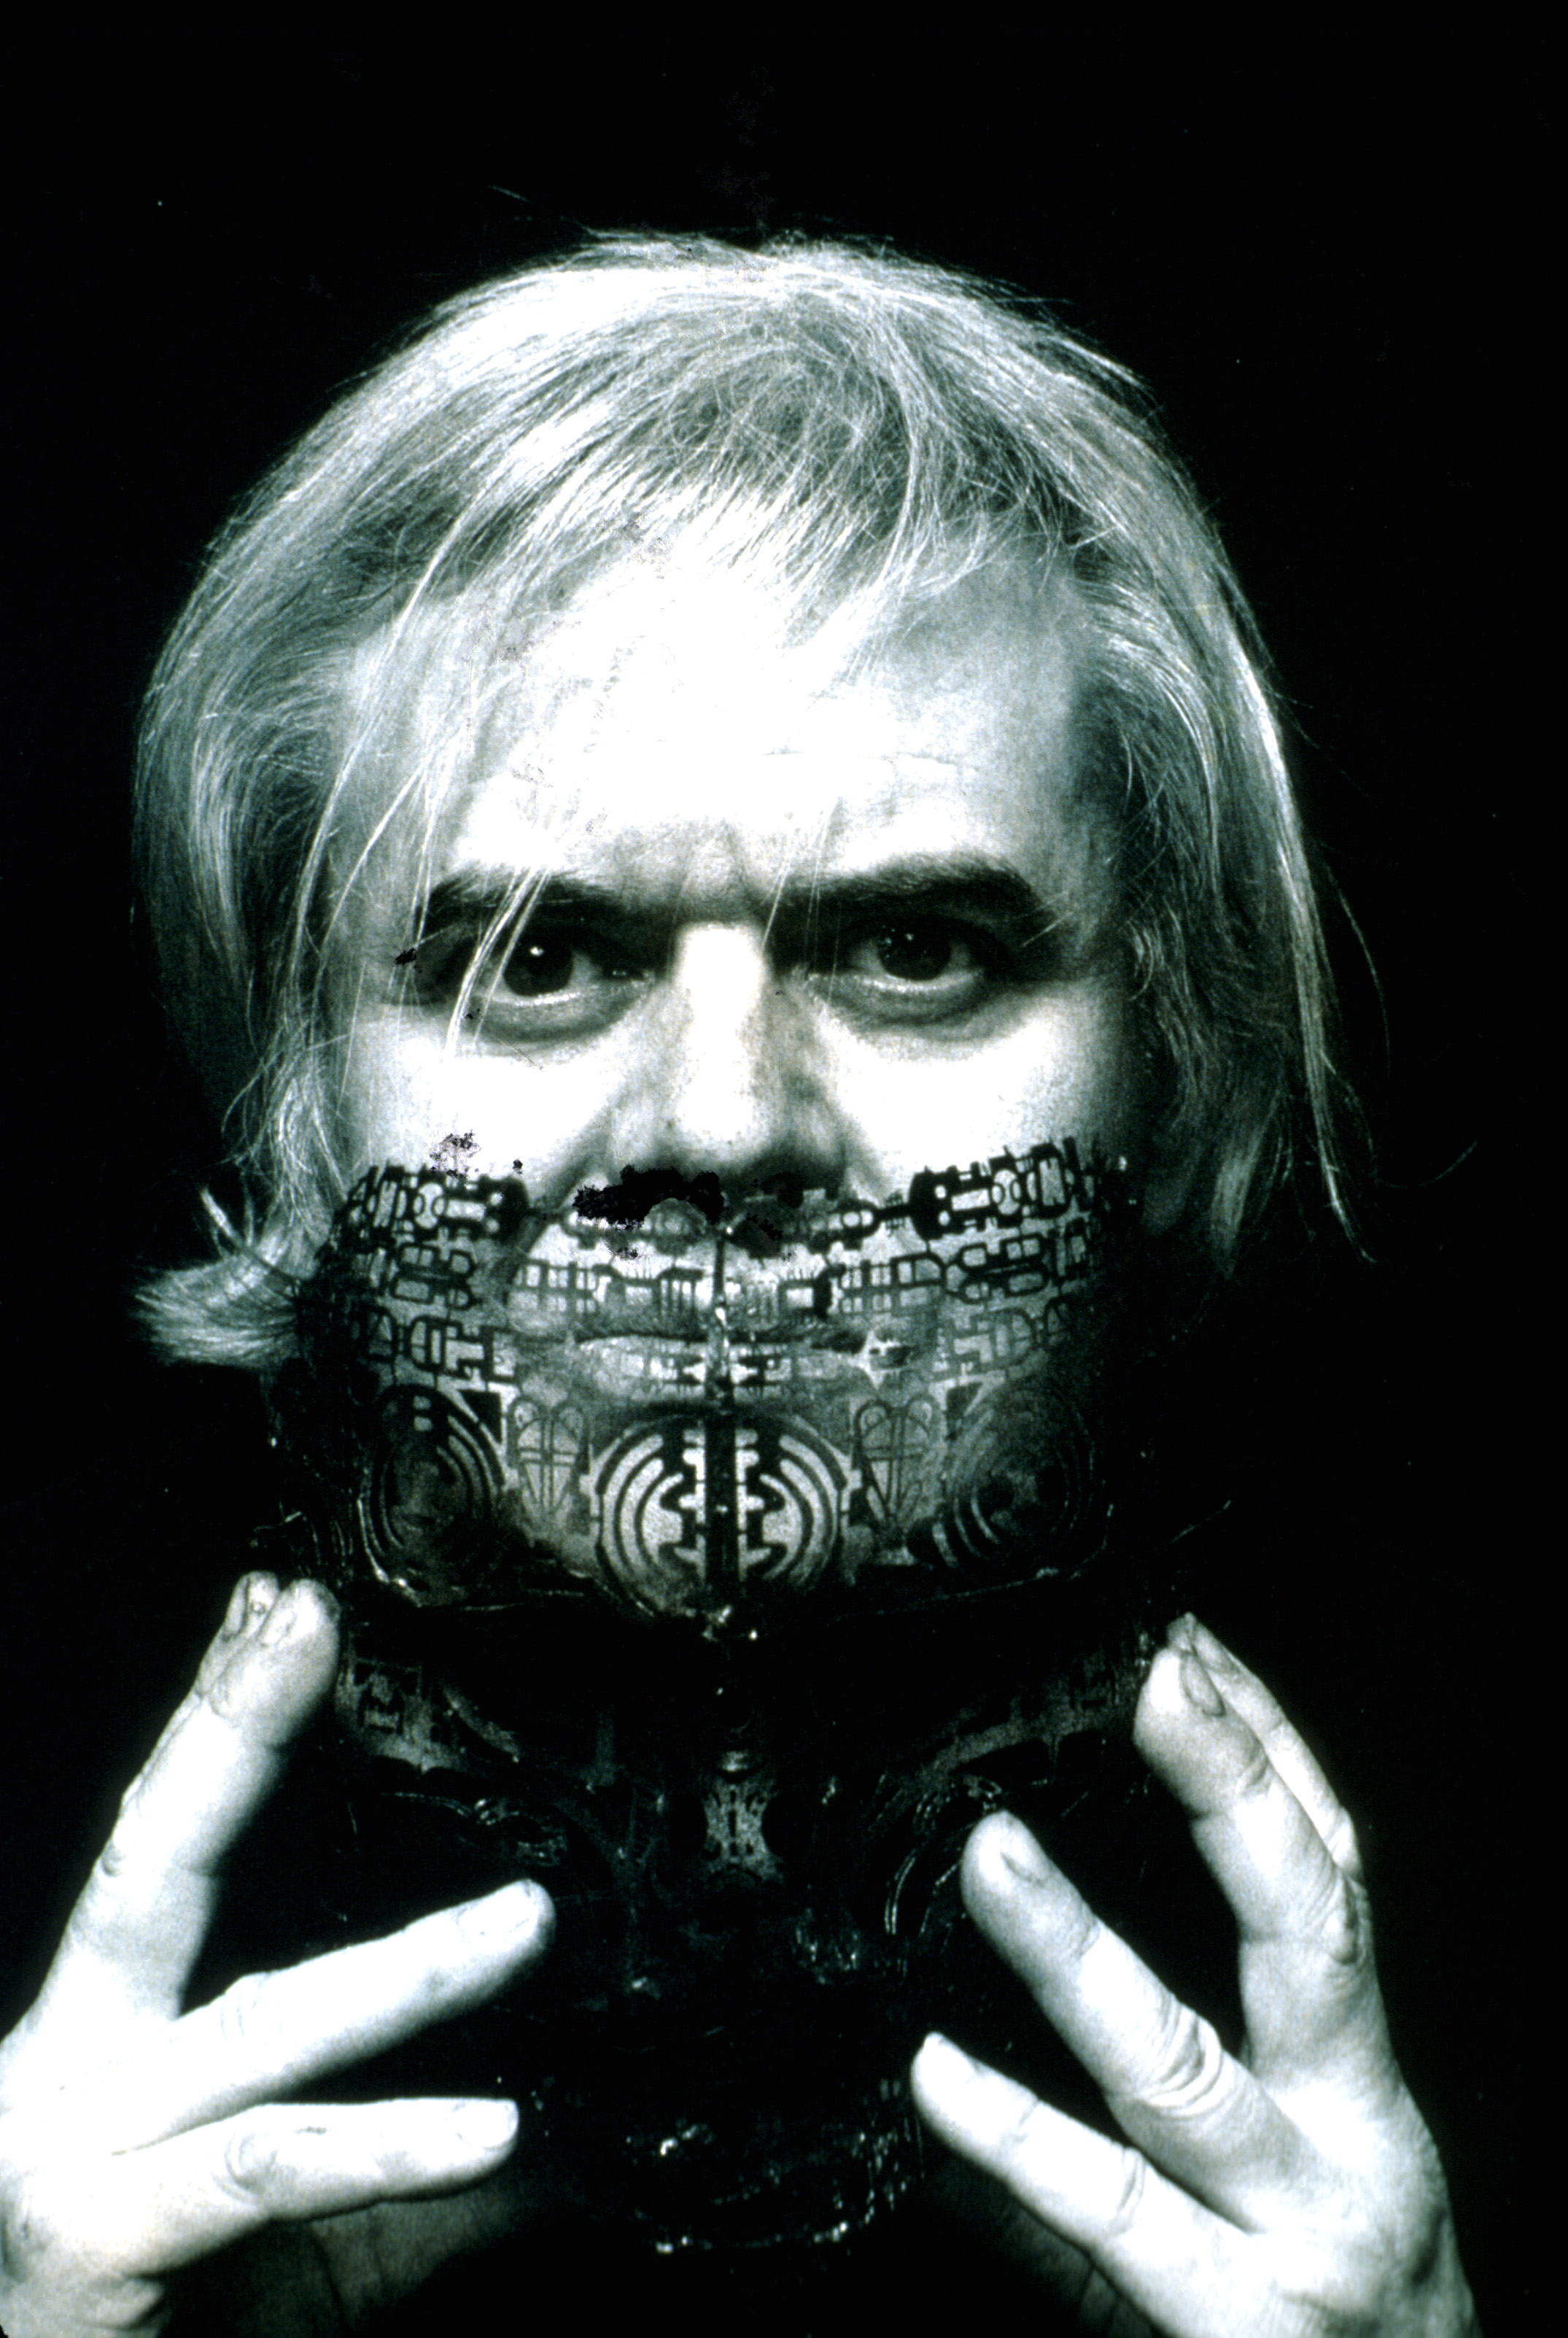 Visual artist H. R. Giger taking off face mask.